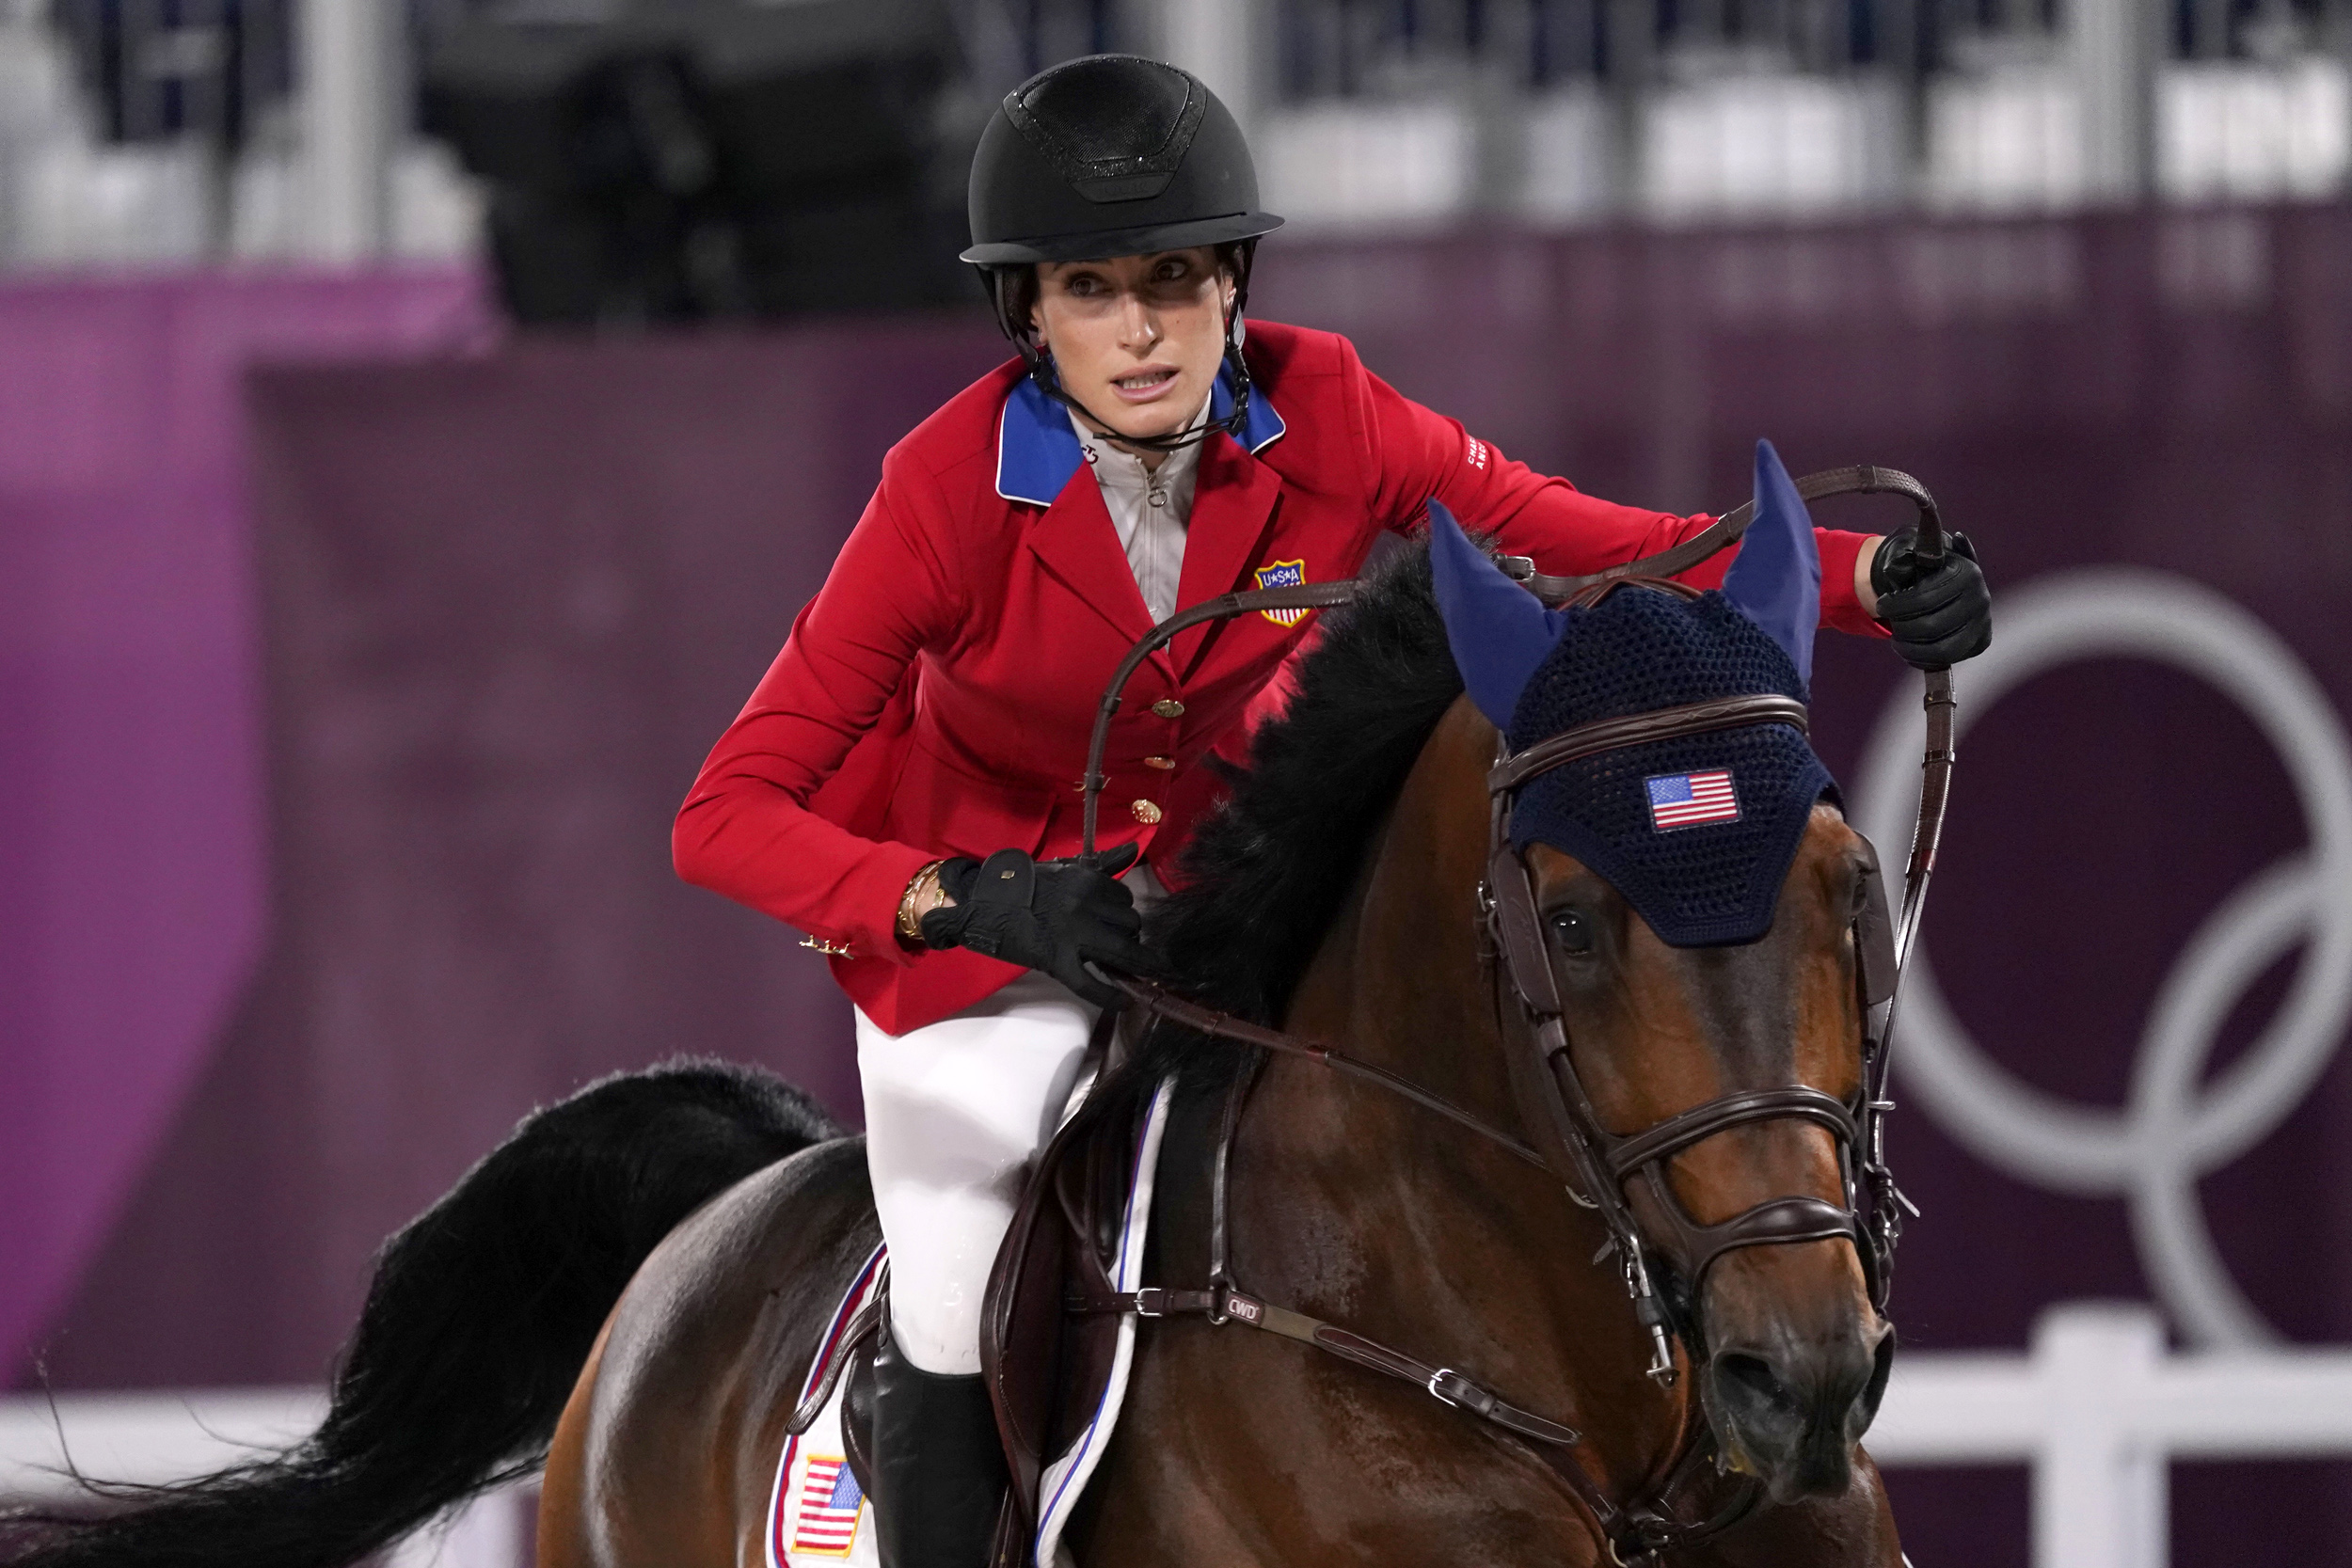 Jessica Springsteen, daughter of rock icon Bruce Springsteen, captures silver in Olympic debut